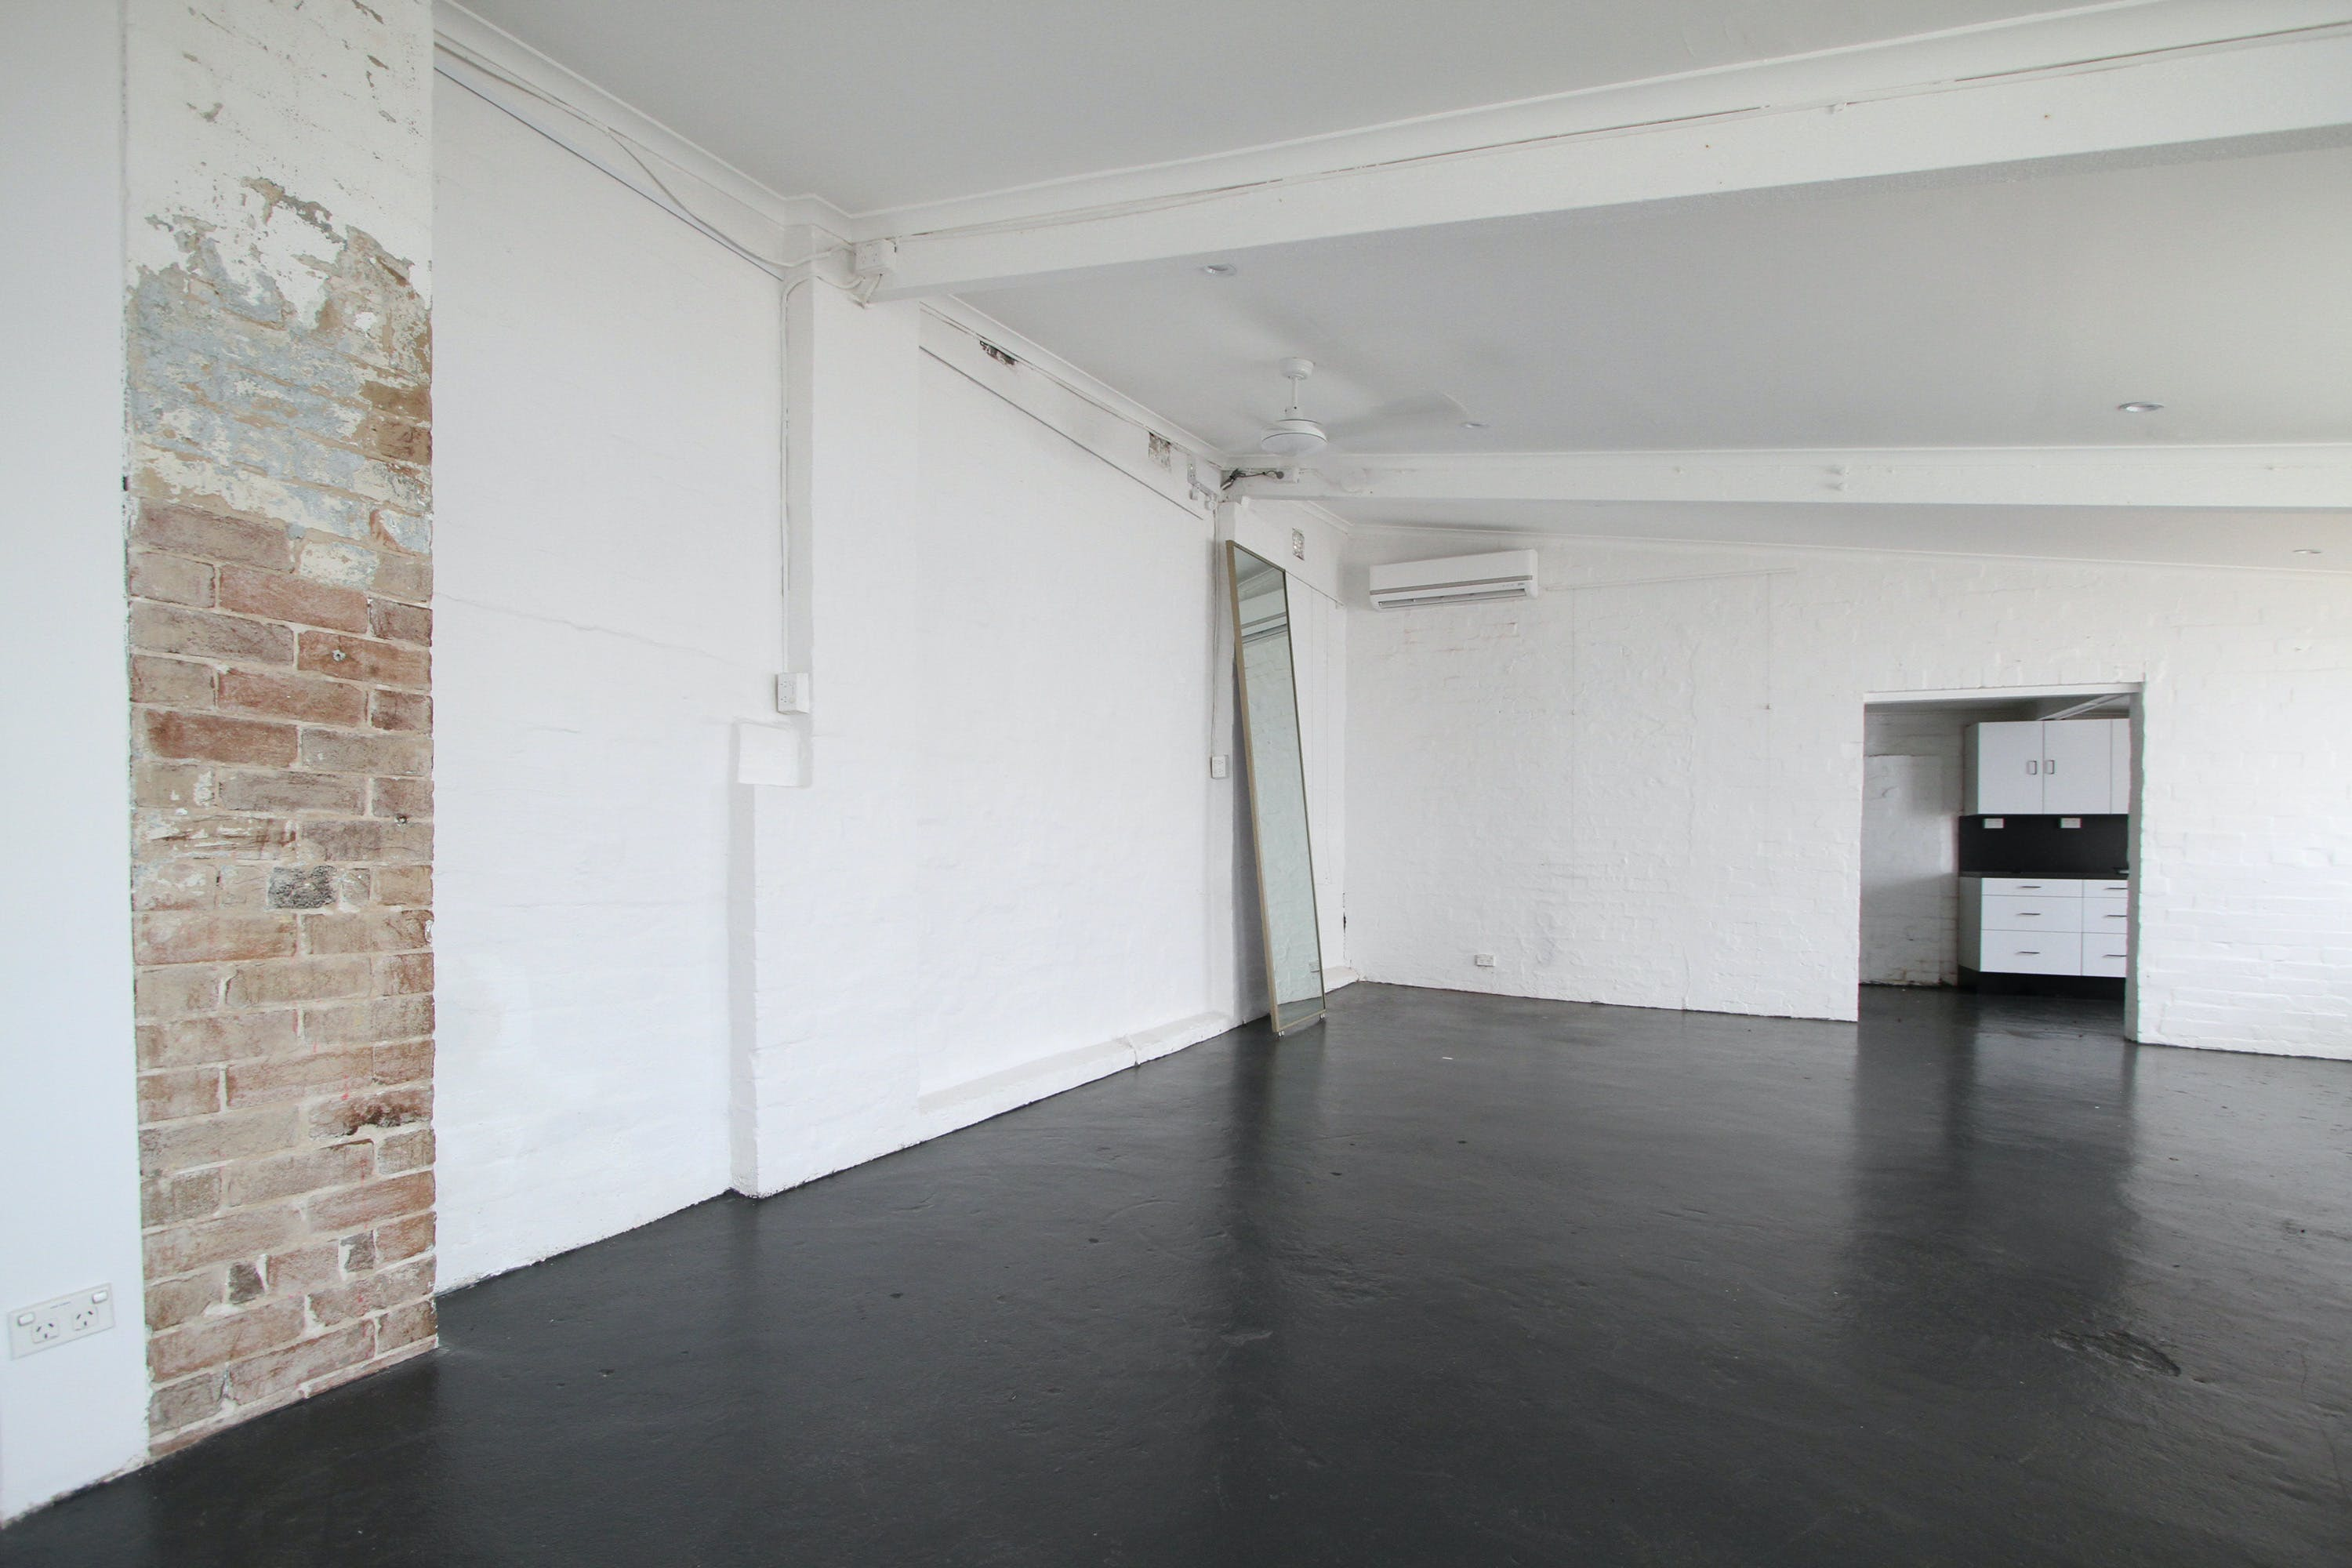 Annexe, multi-use area at Comber Street Studios, image 5